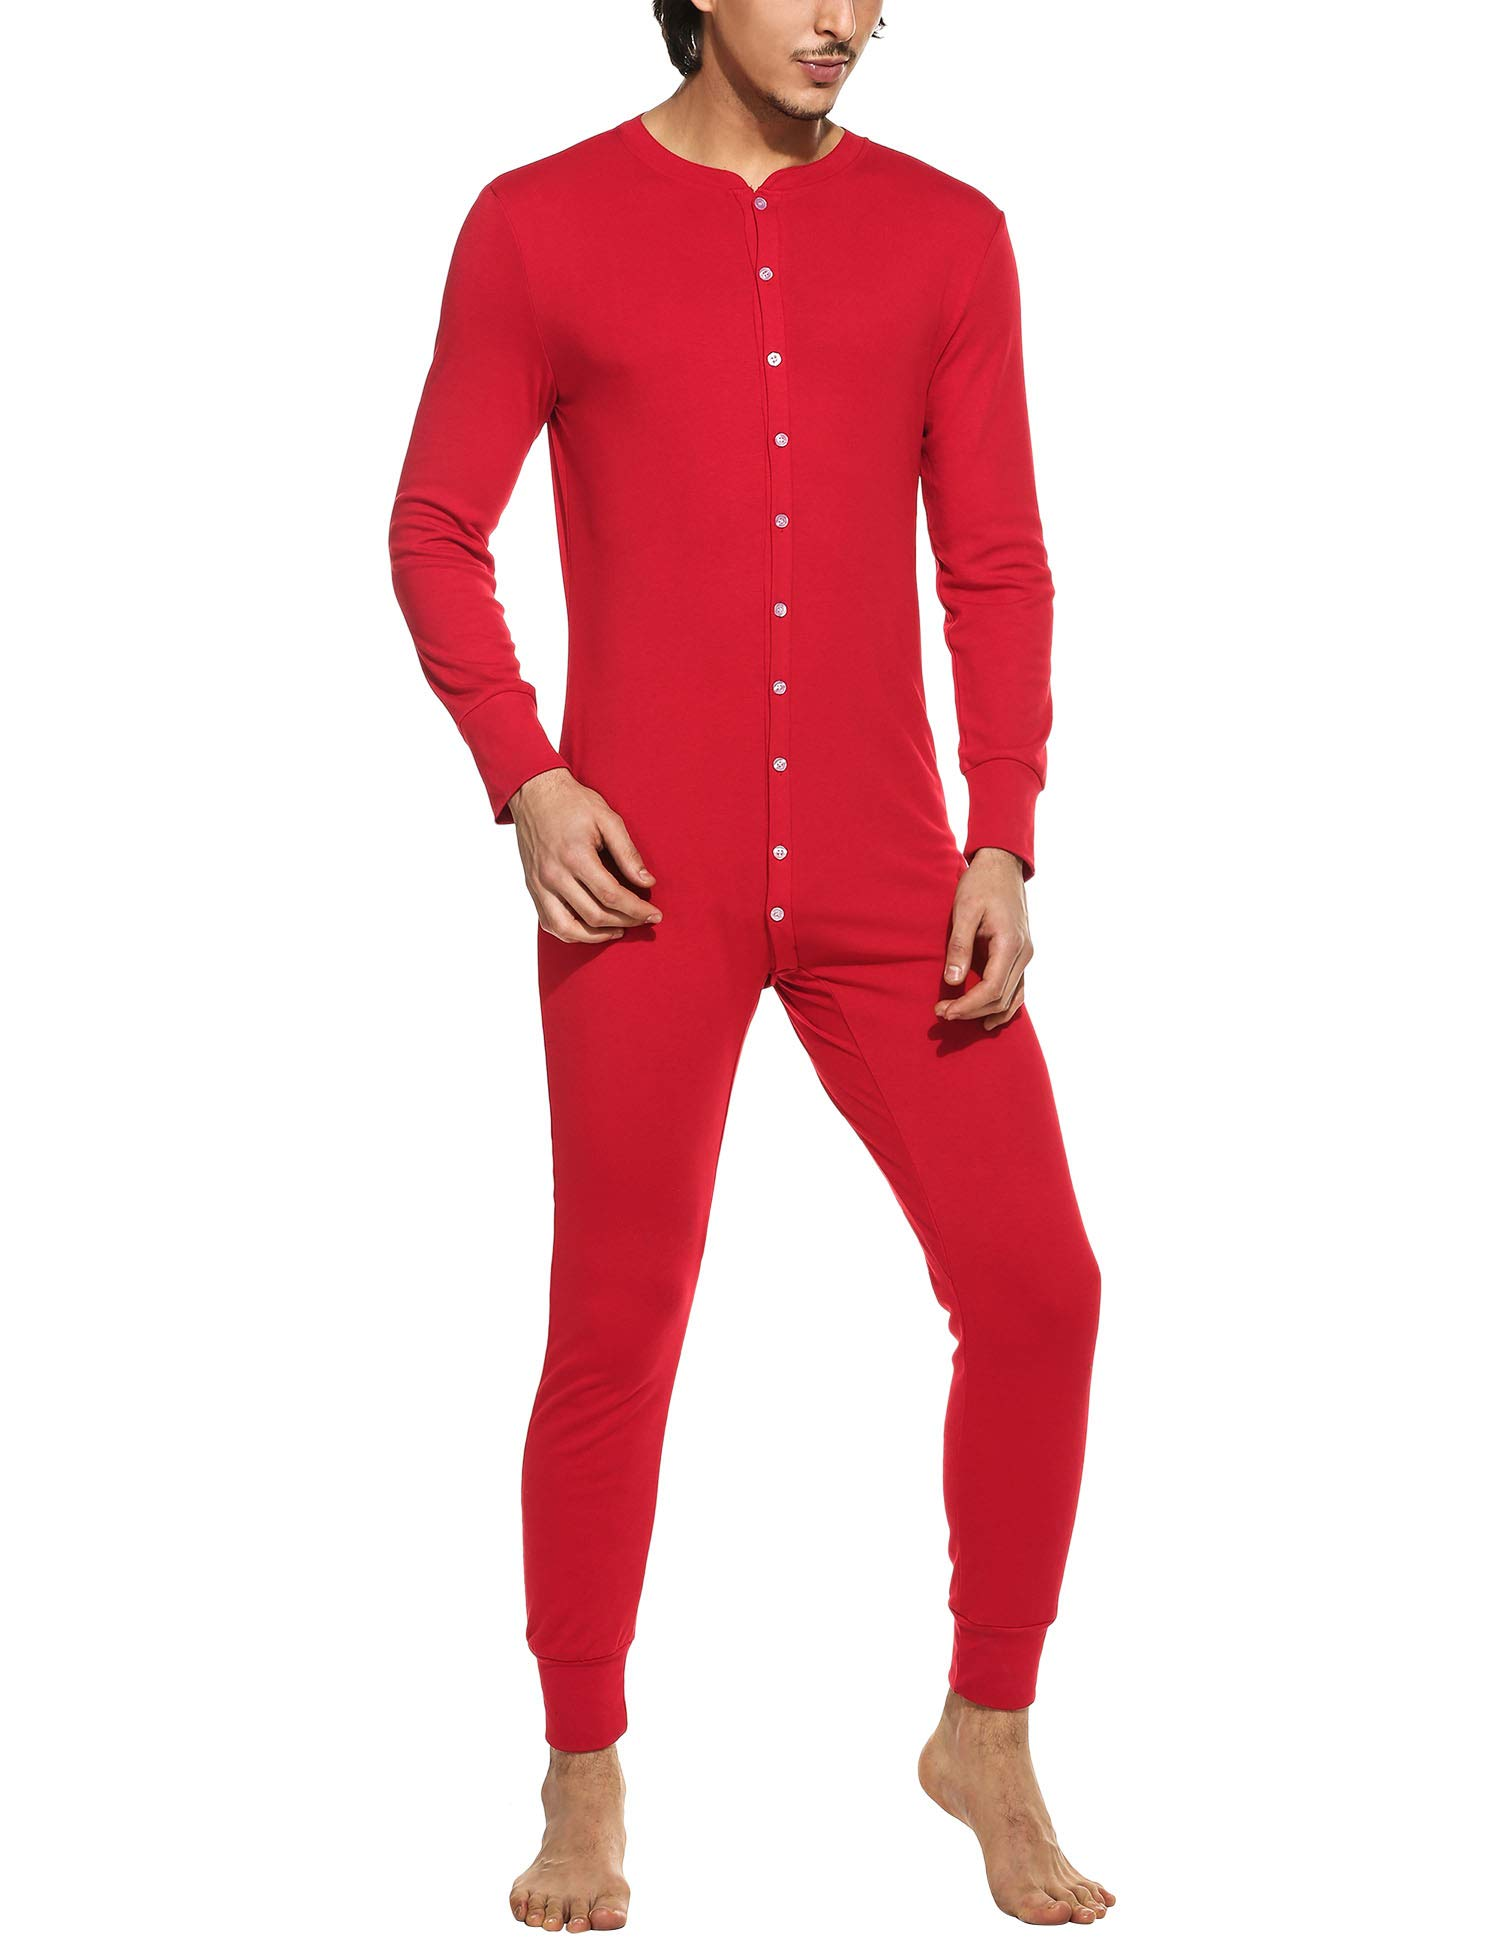 Hotouch Mens Long Sleeve Comfortable Pajamas Thermal Underwear Long Johns Sets - Waffle - Fleece Lined Red L by Hotouch